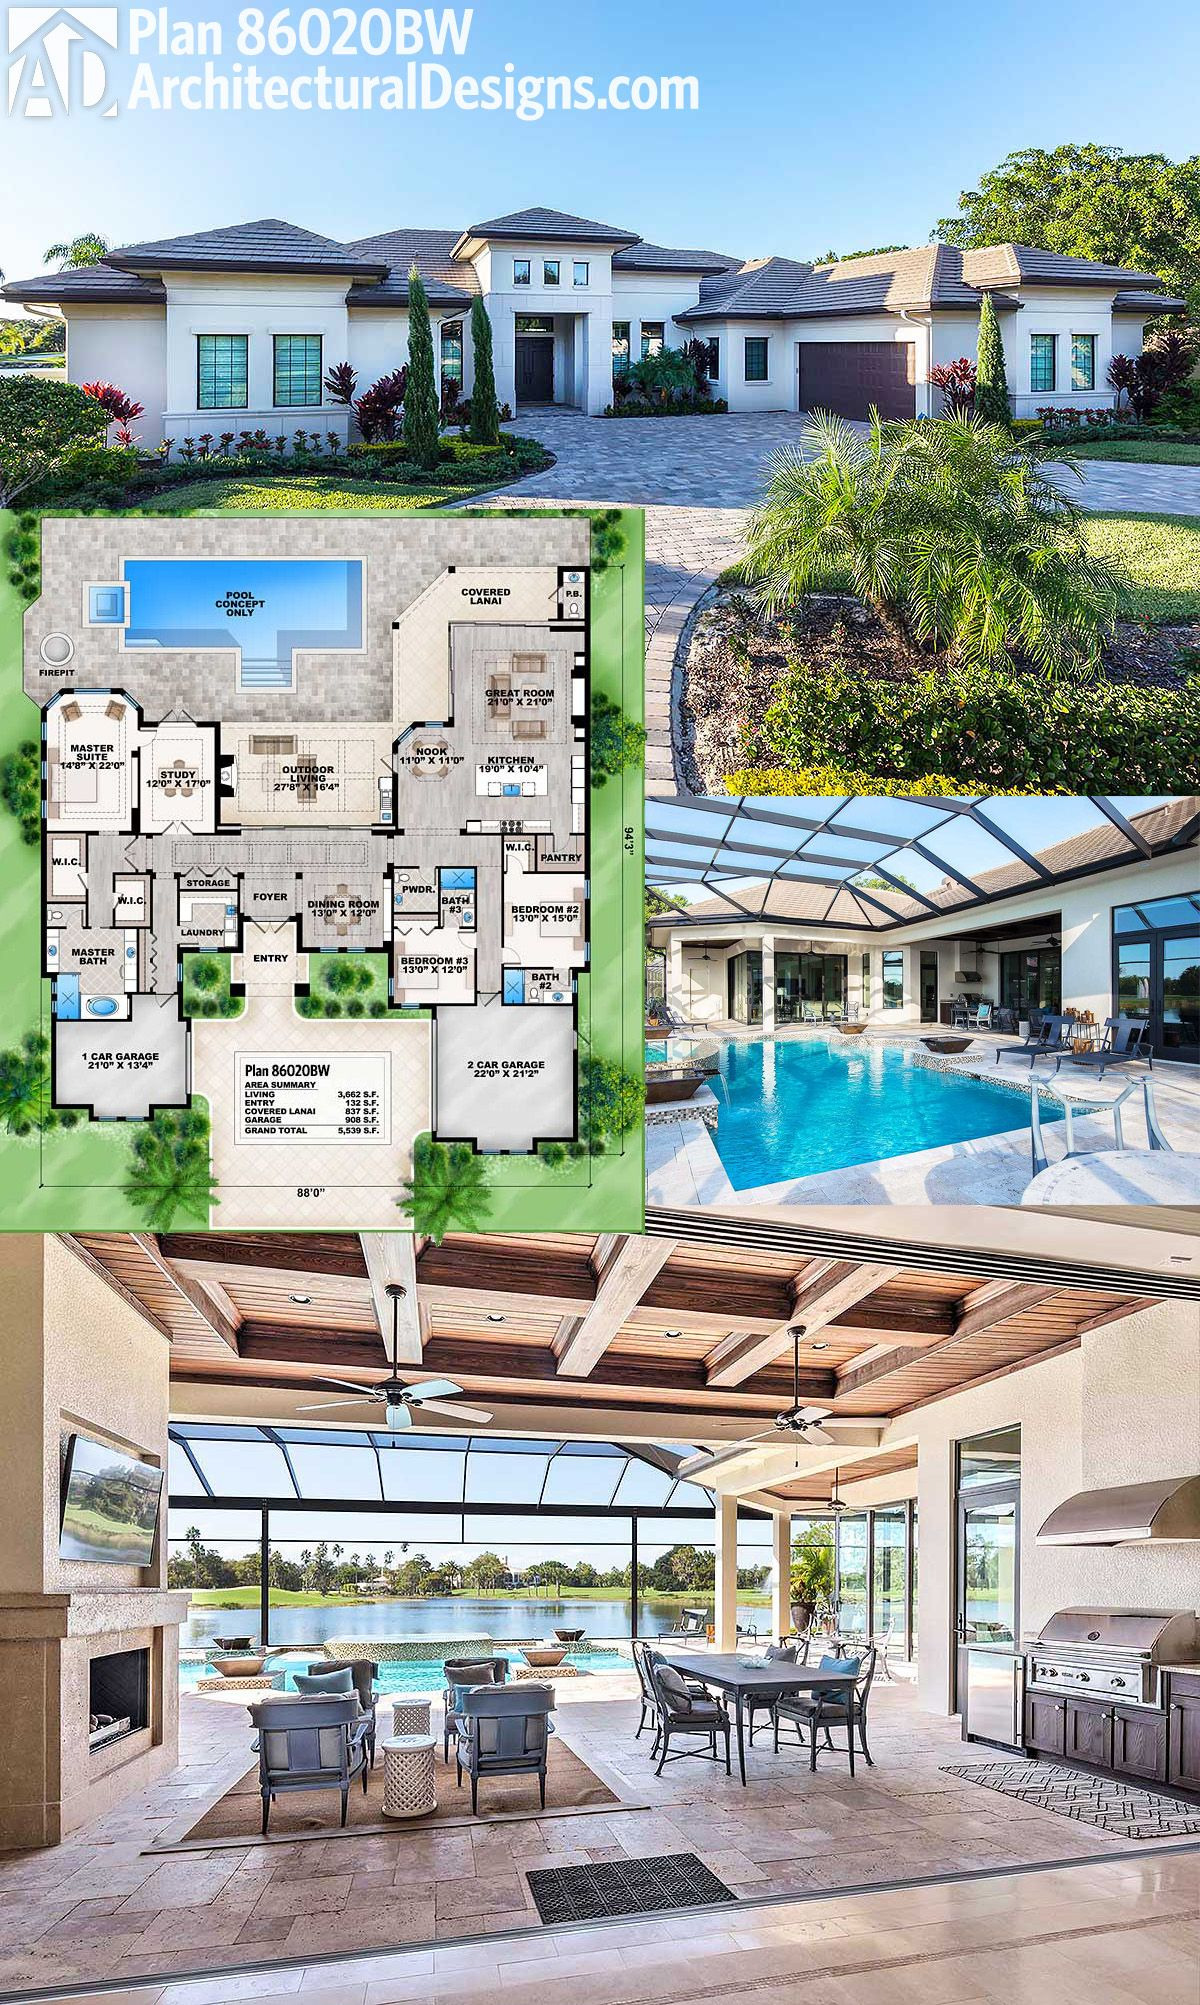 Florida House Plans with Pool Luxury Plan Bw Florida House Plan with Open Layout